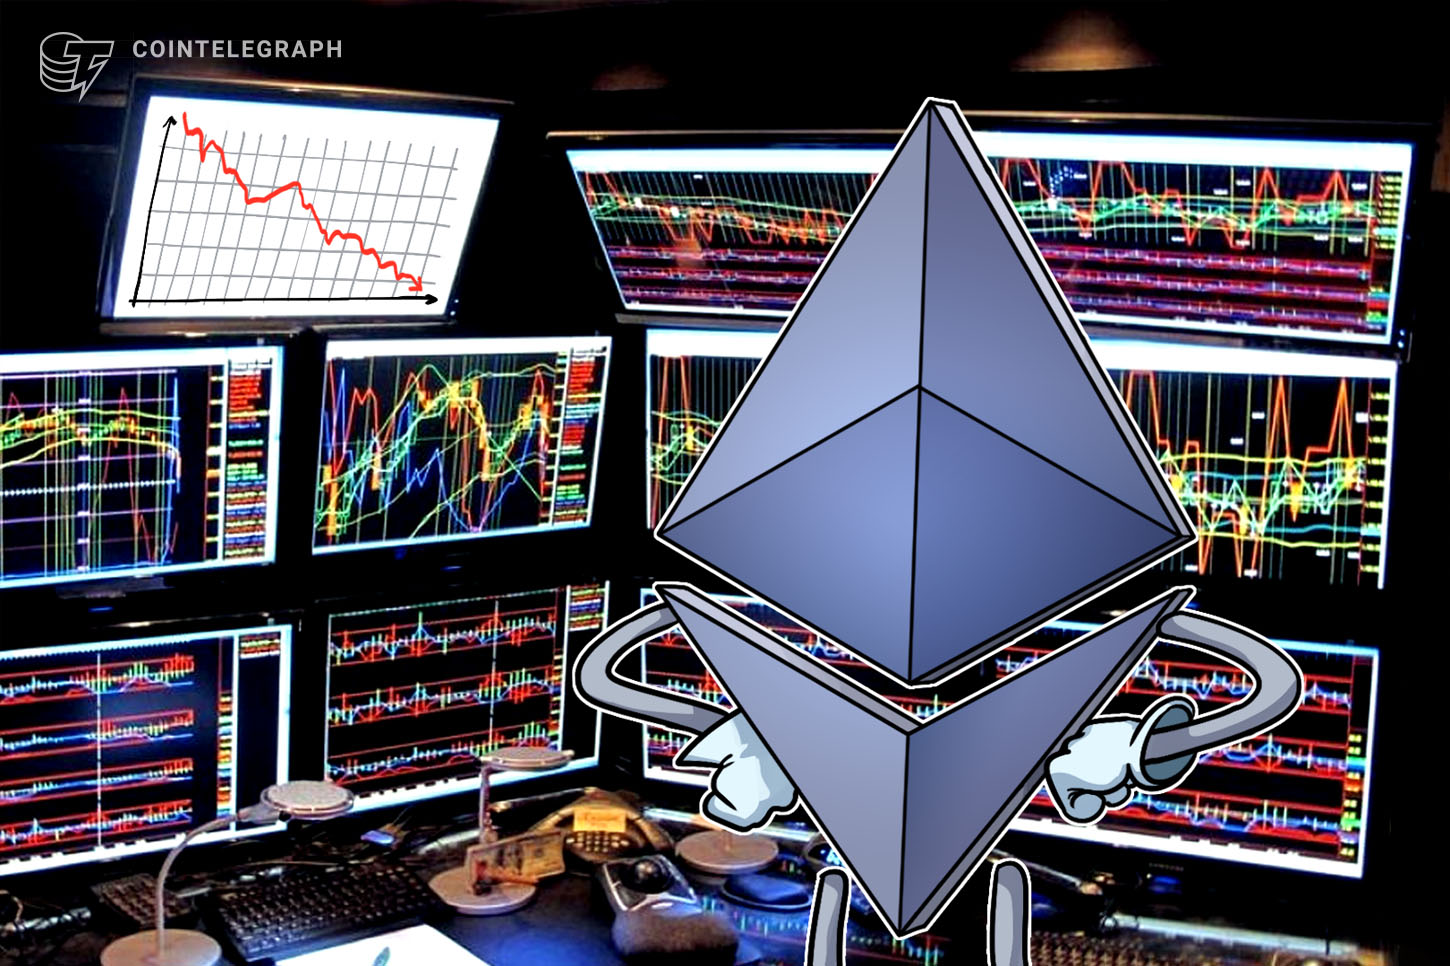 Ethereum tumbles under $600 as XRP debacle takes a toll on altcoins